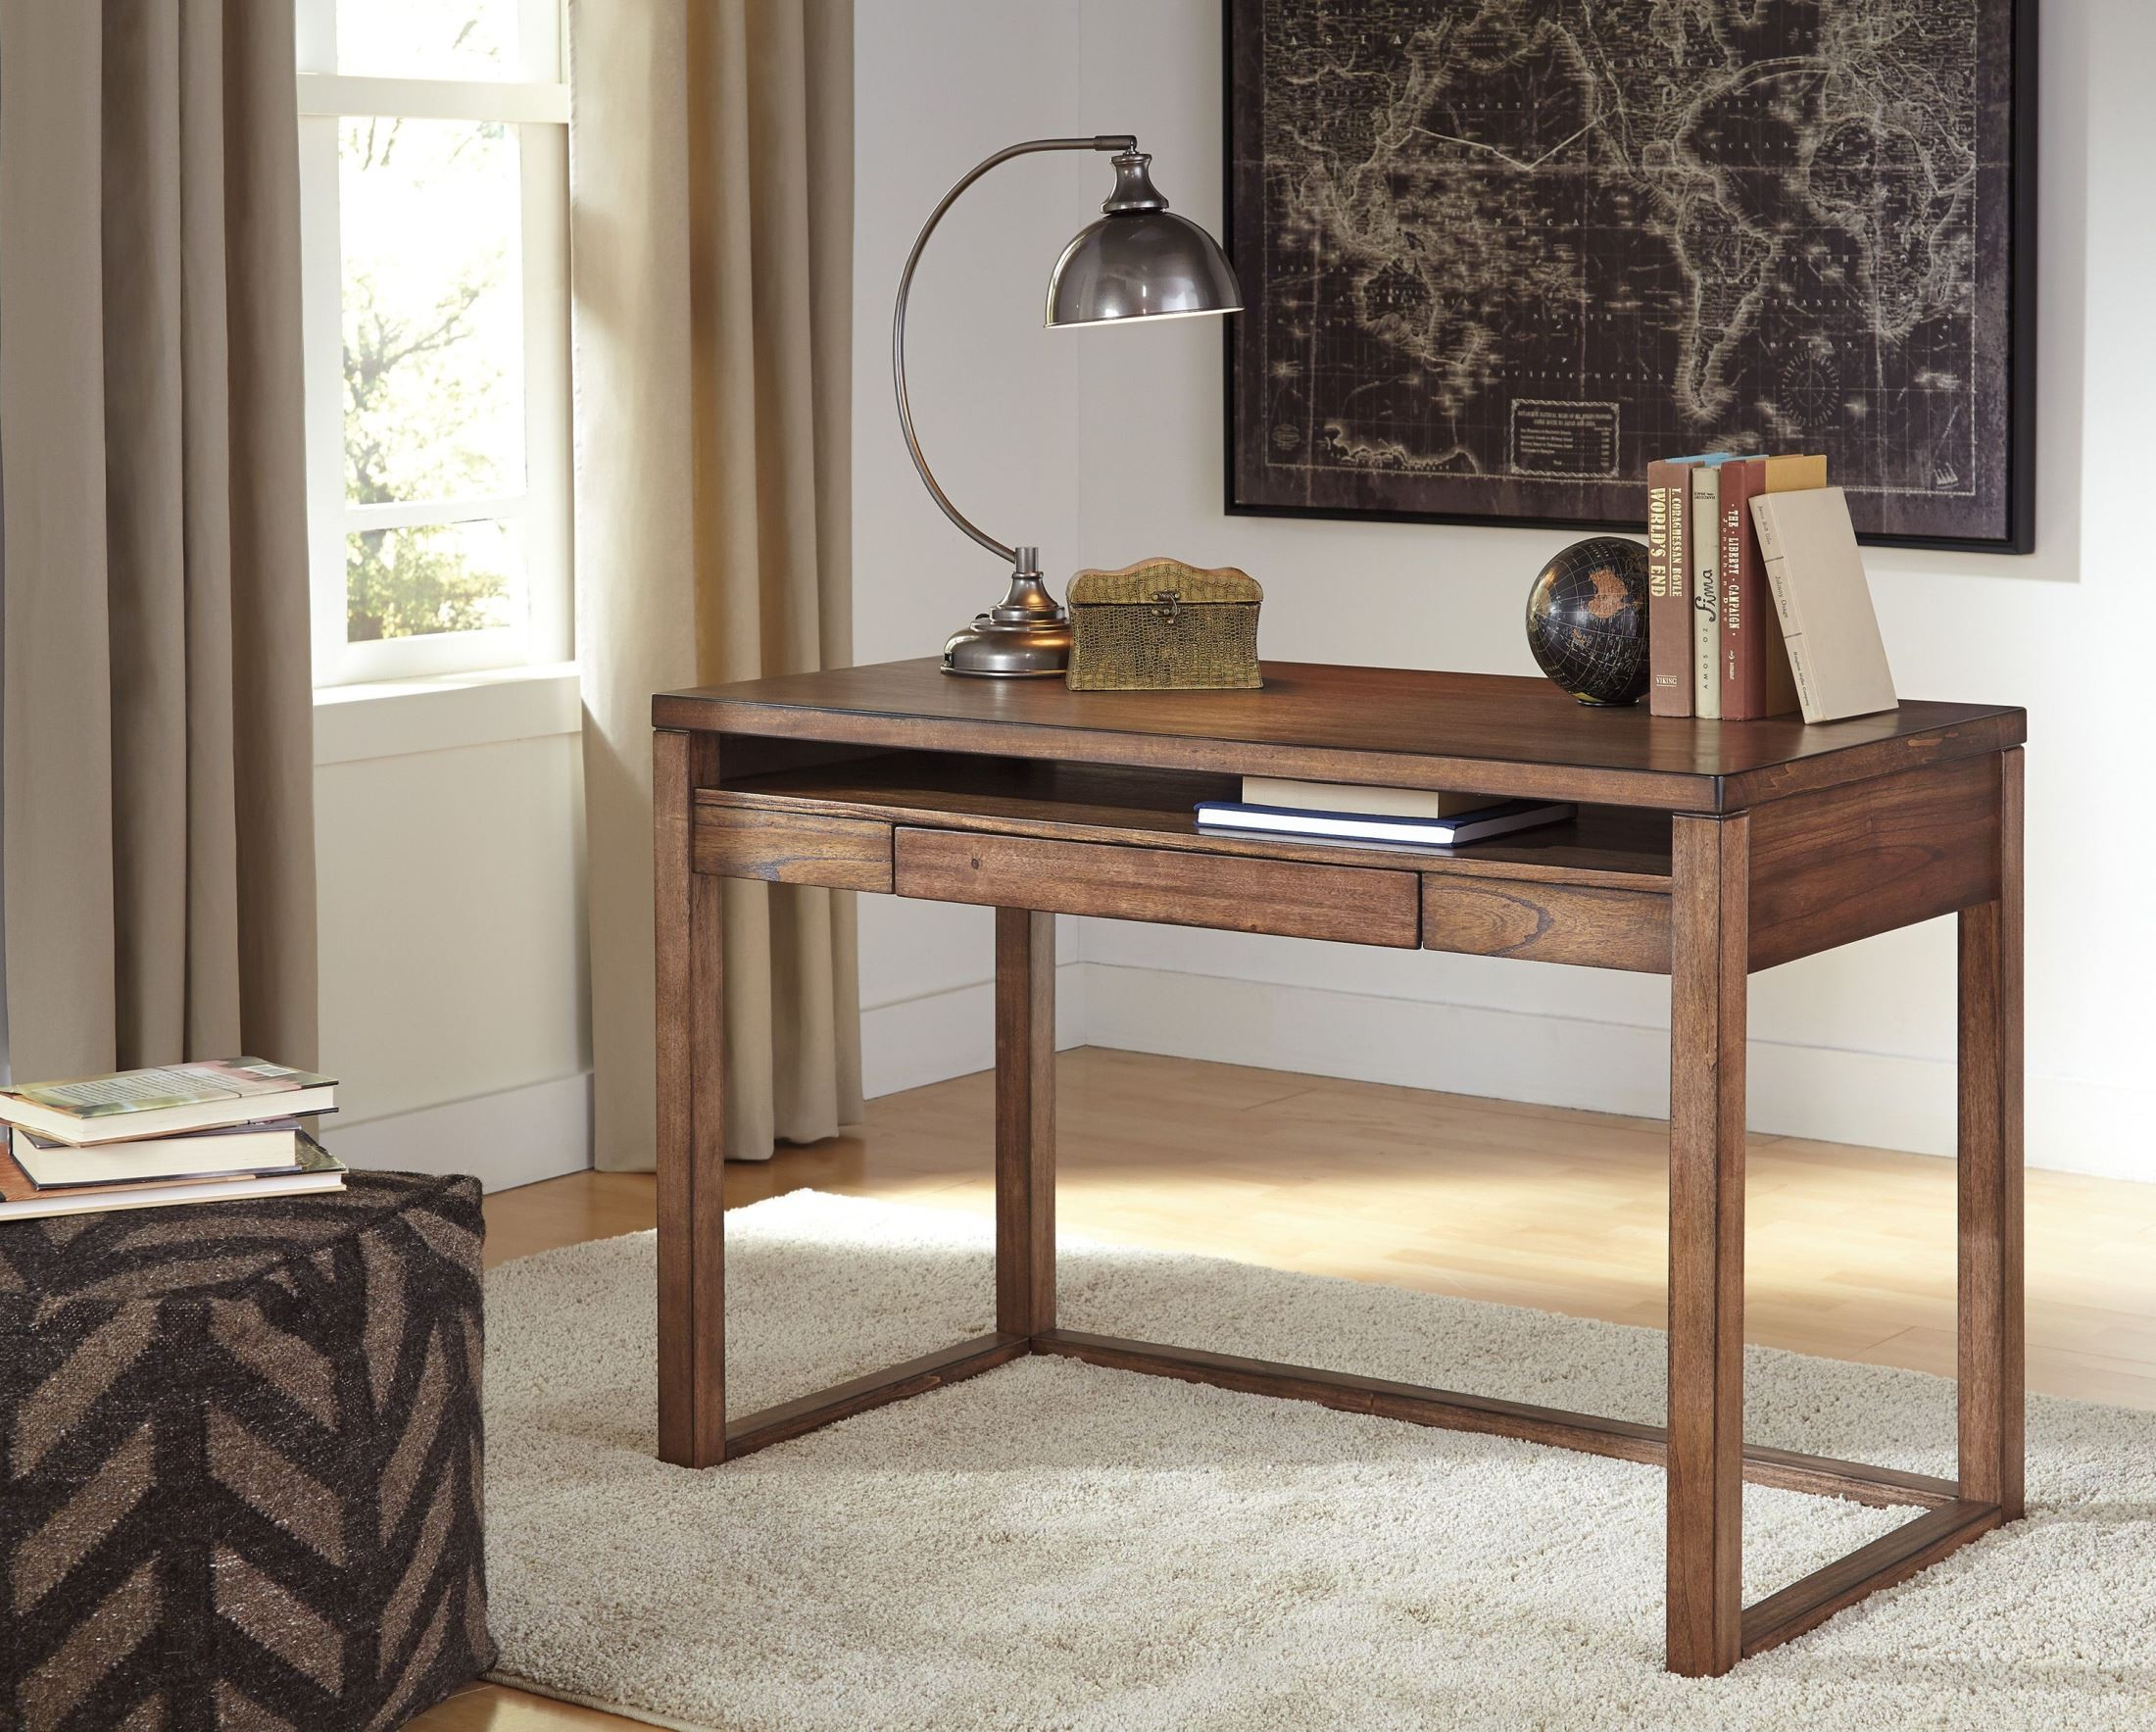 Baybrin Rustic Brown Home Office Small Desk from Ashley